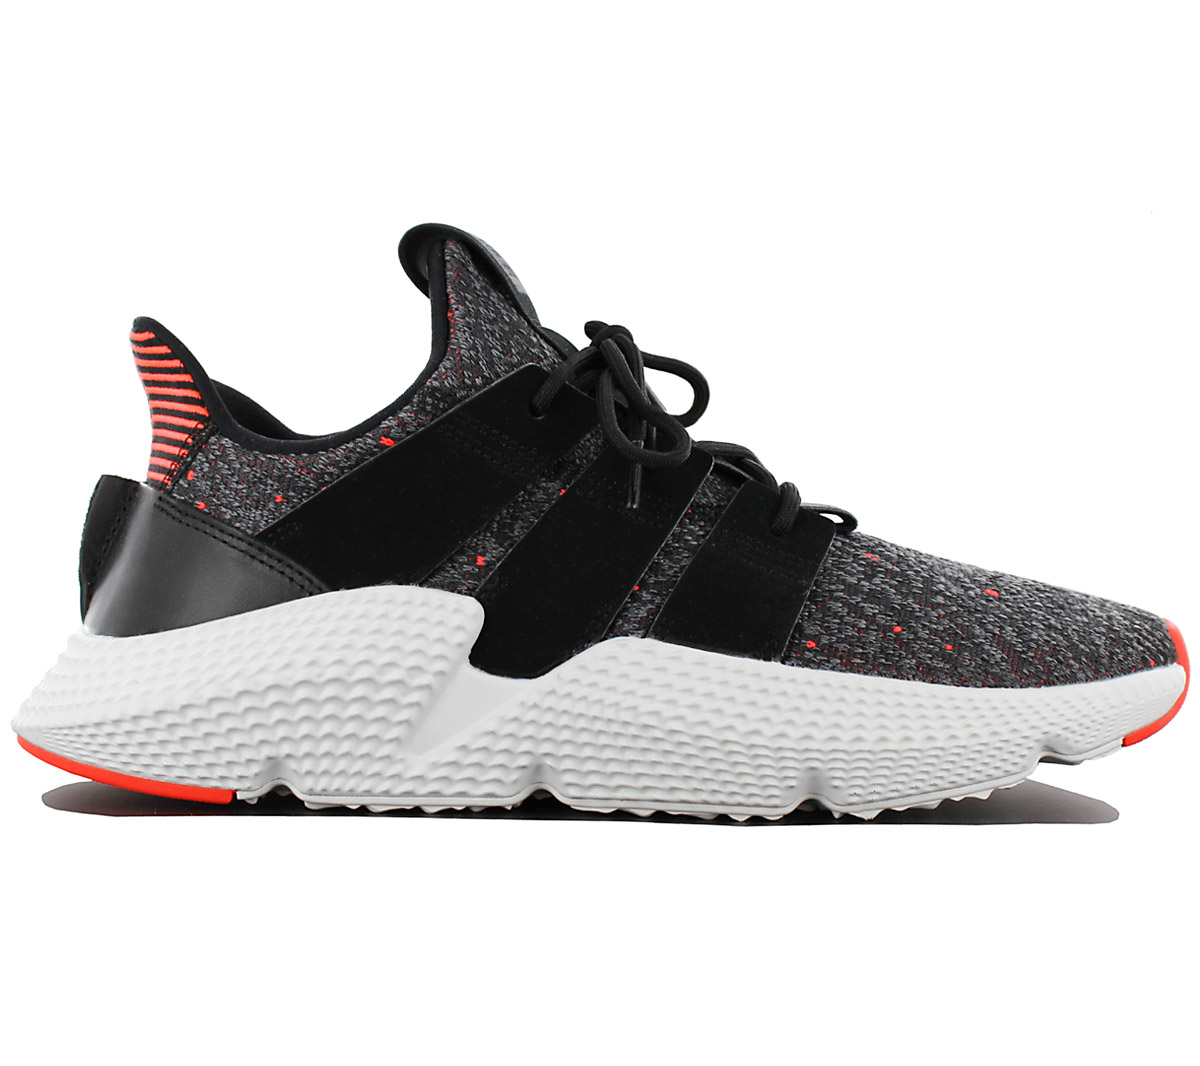 new arrival d6382 6fbe7 Adidas Originals Prophere Sneaker Mens Shoes Trainers Black New ...